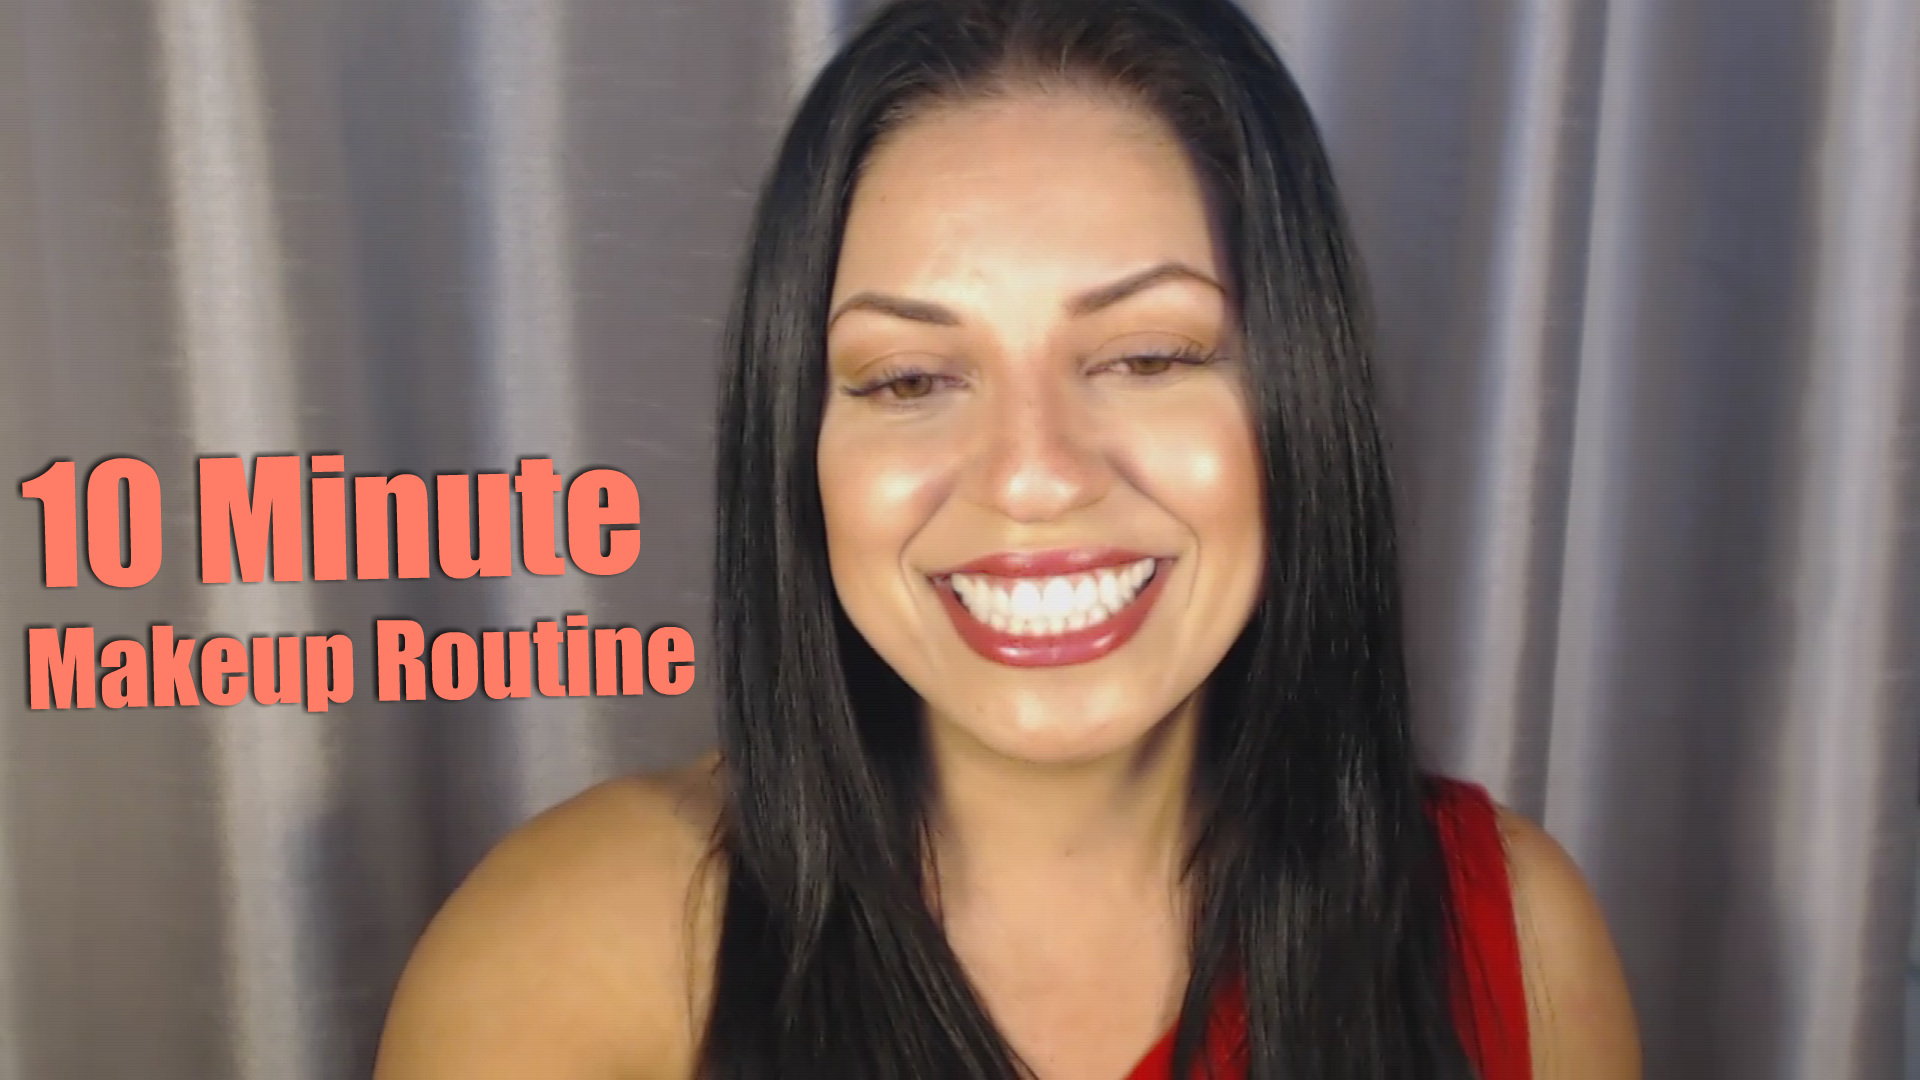 10 Minute Makeup Routine